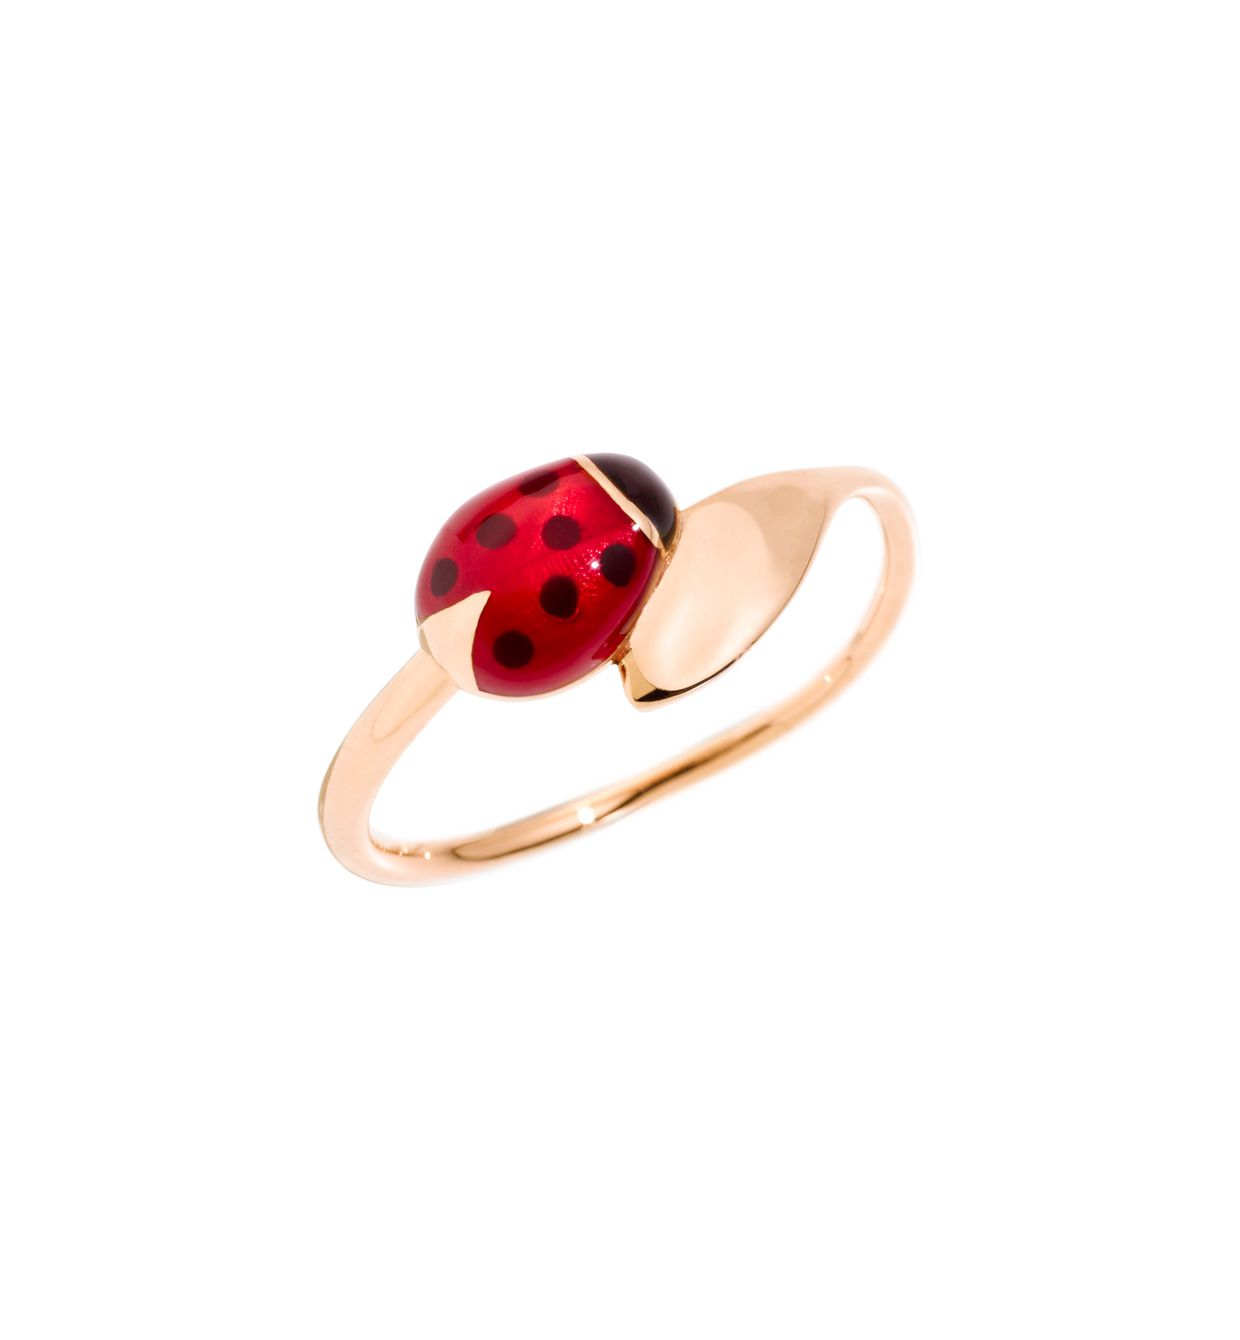 DoDo Ring Ladybug in 9k Rose Gold with Coloured Enamel - Orsini Jewellers NZ